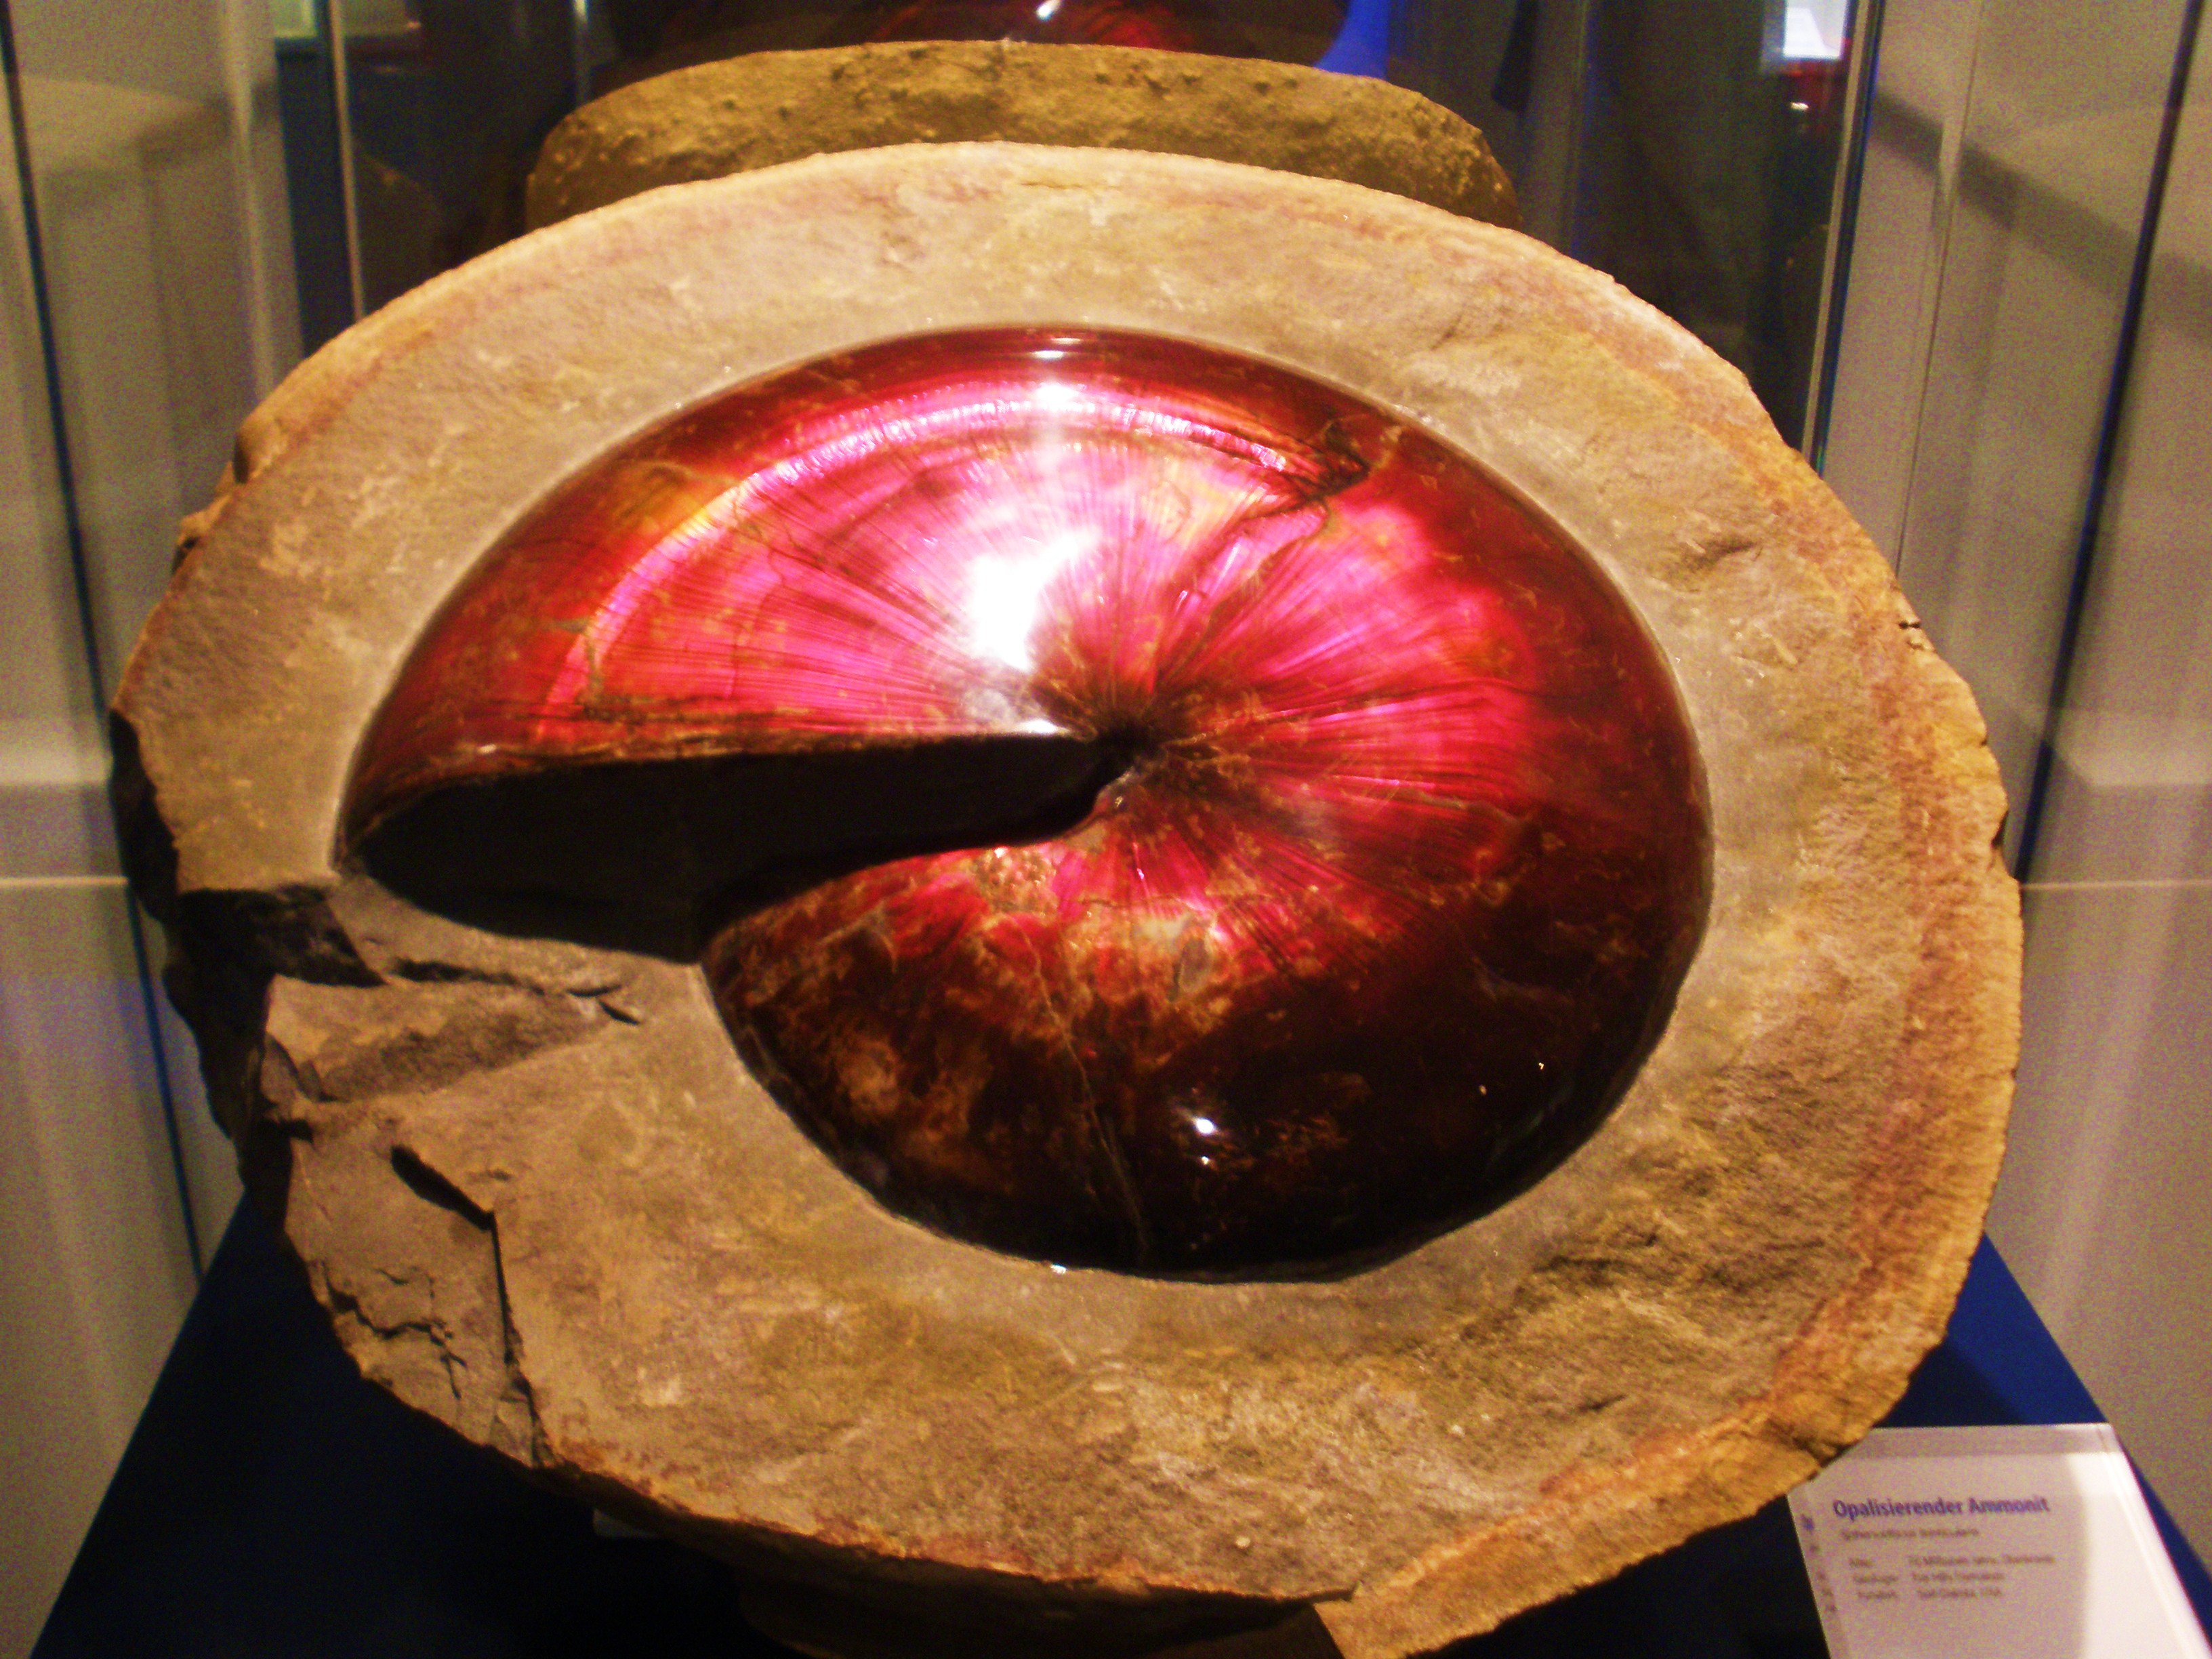 https://upload.wikimedia.org/wikipedia/commons/6/67/Sphenodiscus_-_opalized.jpg